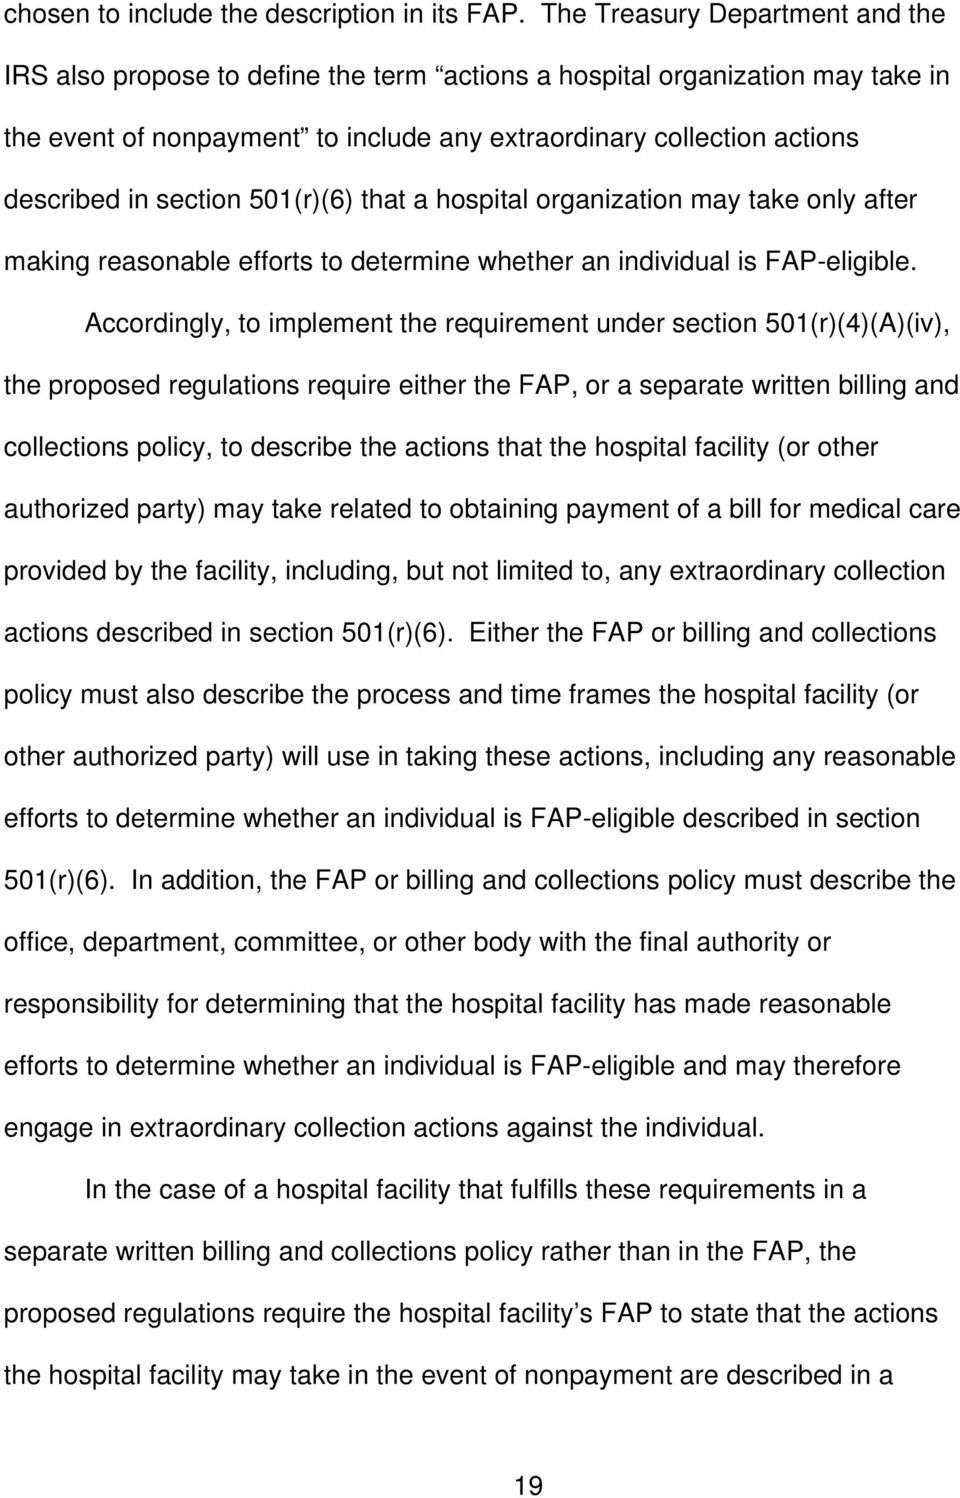 section 501(r)(6) that a hospital organization may take only after making reasonable efforts to determine whether an individual is FAP-eligible.